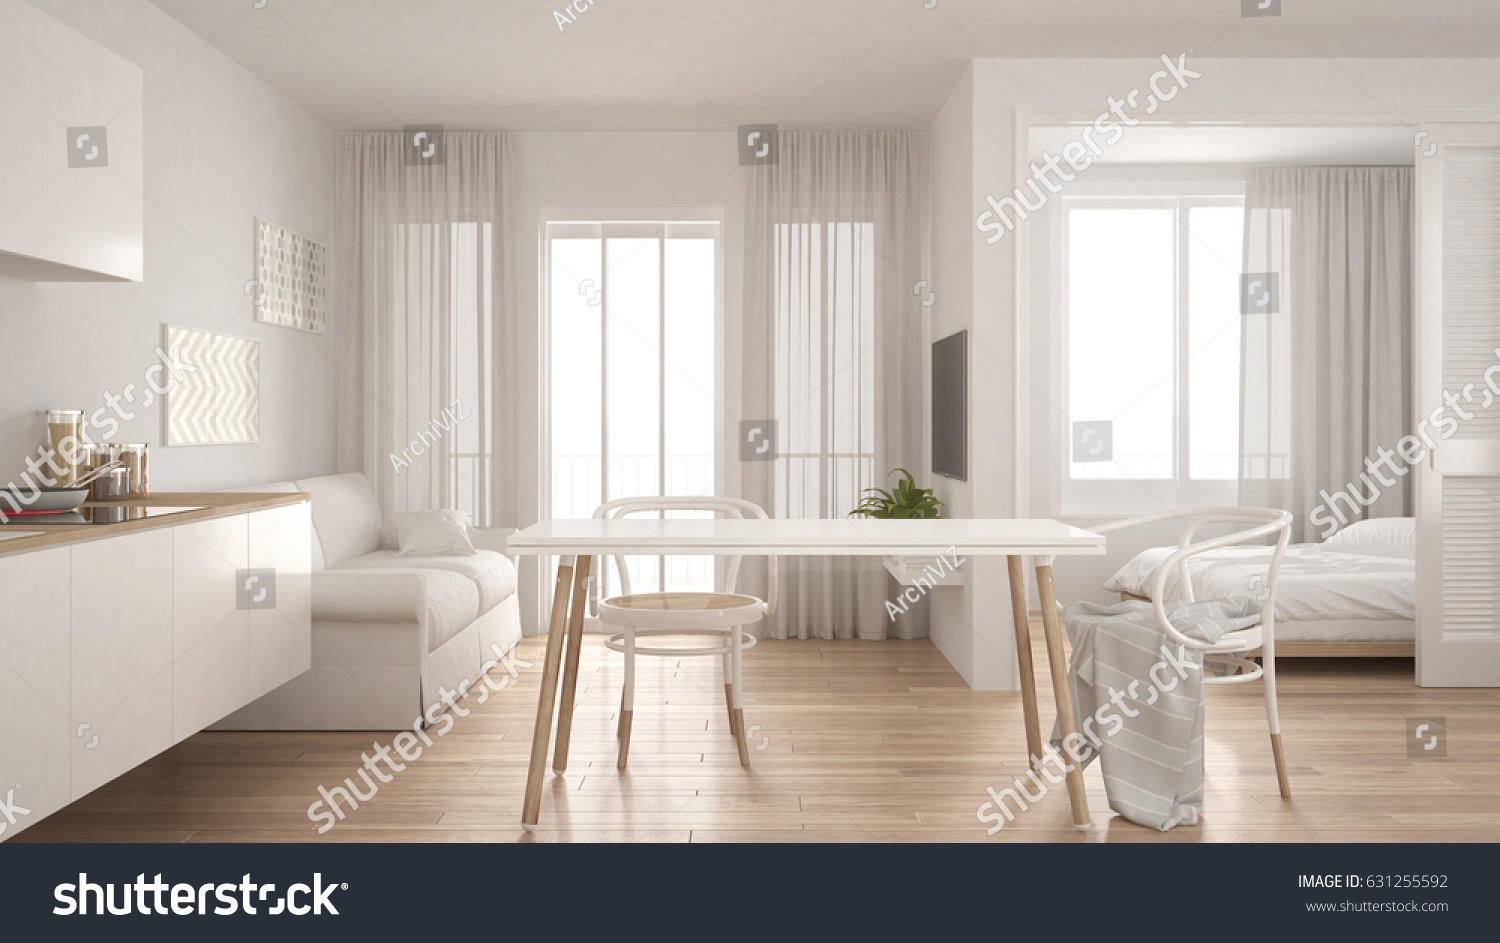 Modern Minimal Kitchen Living Room Bedroom Stock Illustration ...